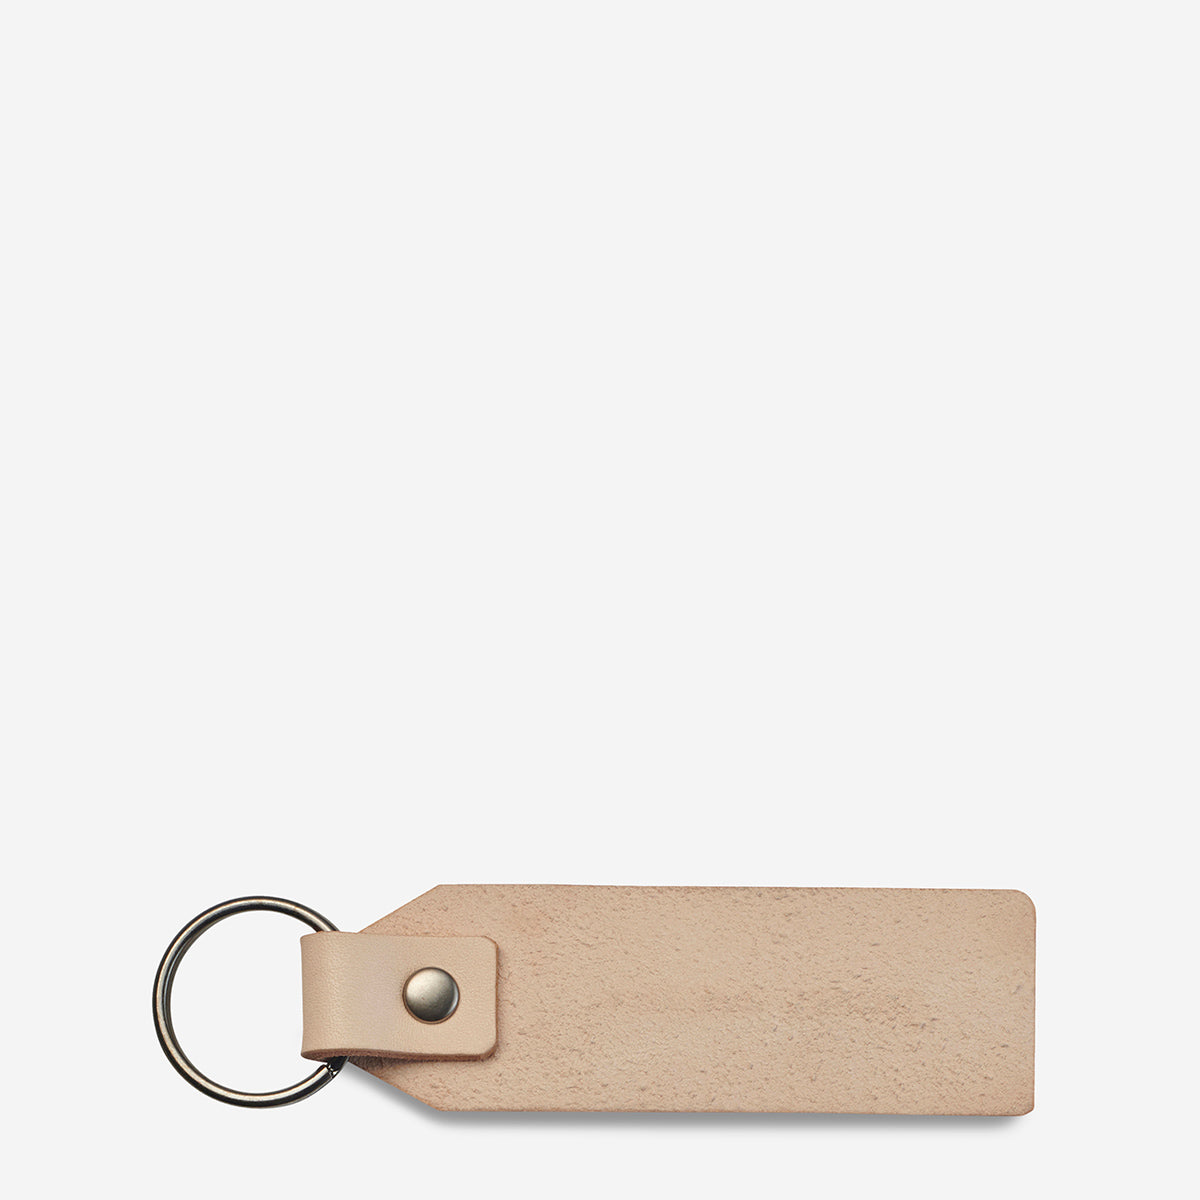 Status Anxiety If I Stay Genuine Leather Keyring - Tan